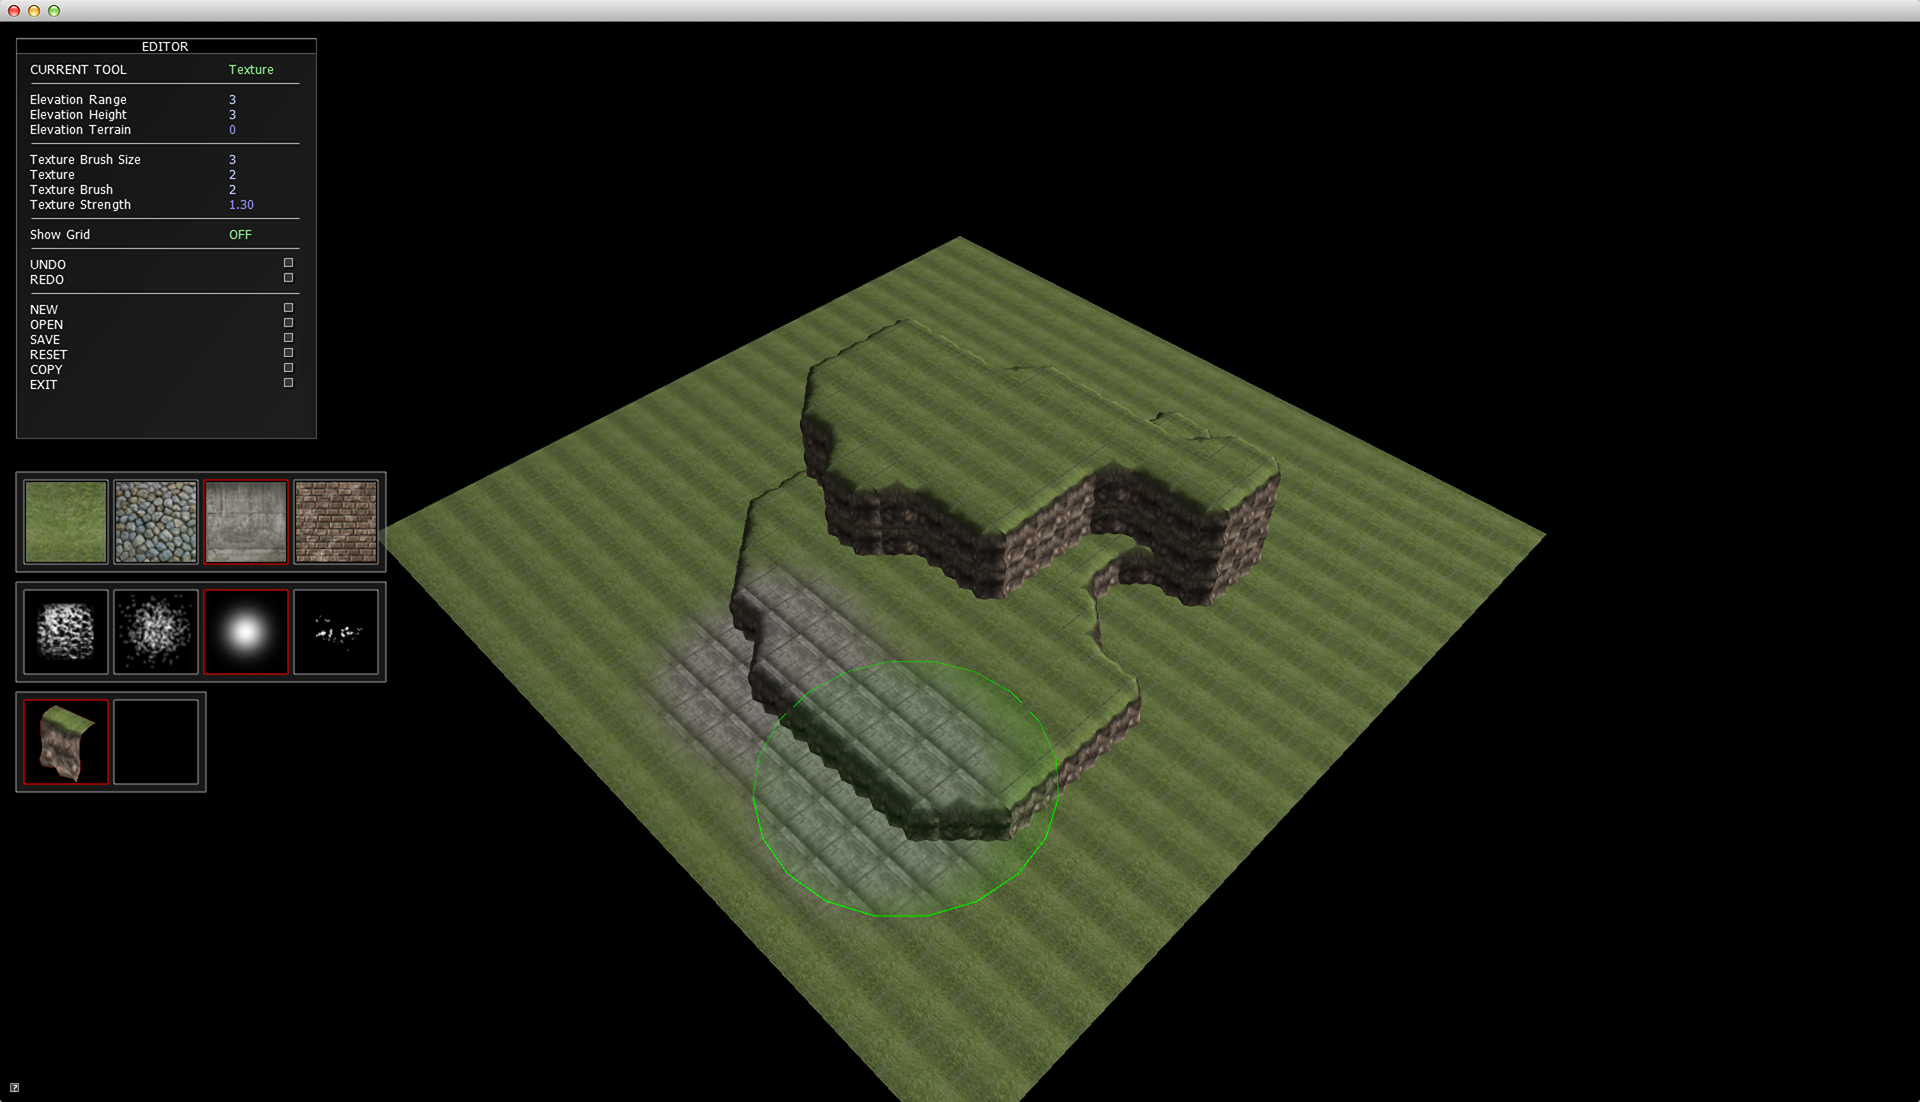 GitHub - patricklynch/Cinder-Map-Editor: This is a simple